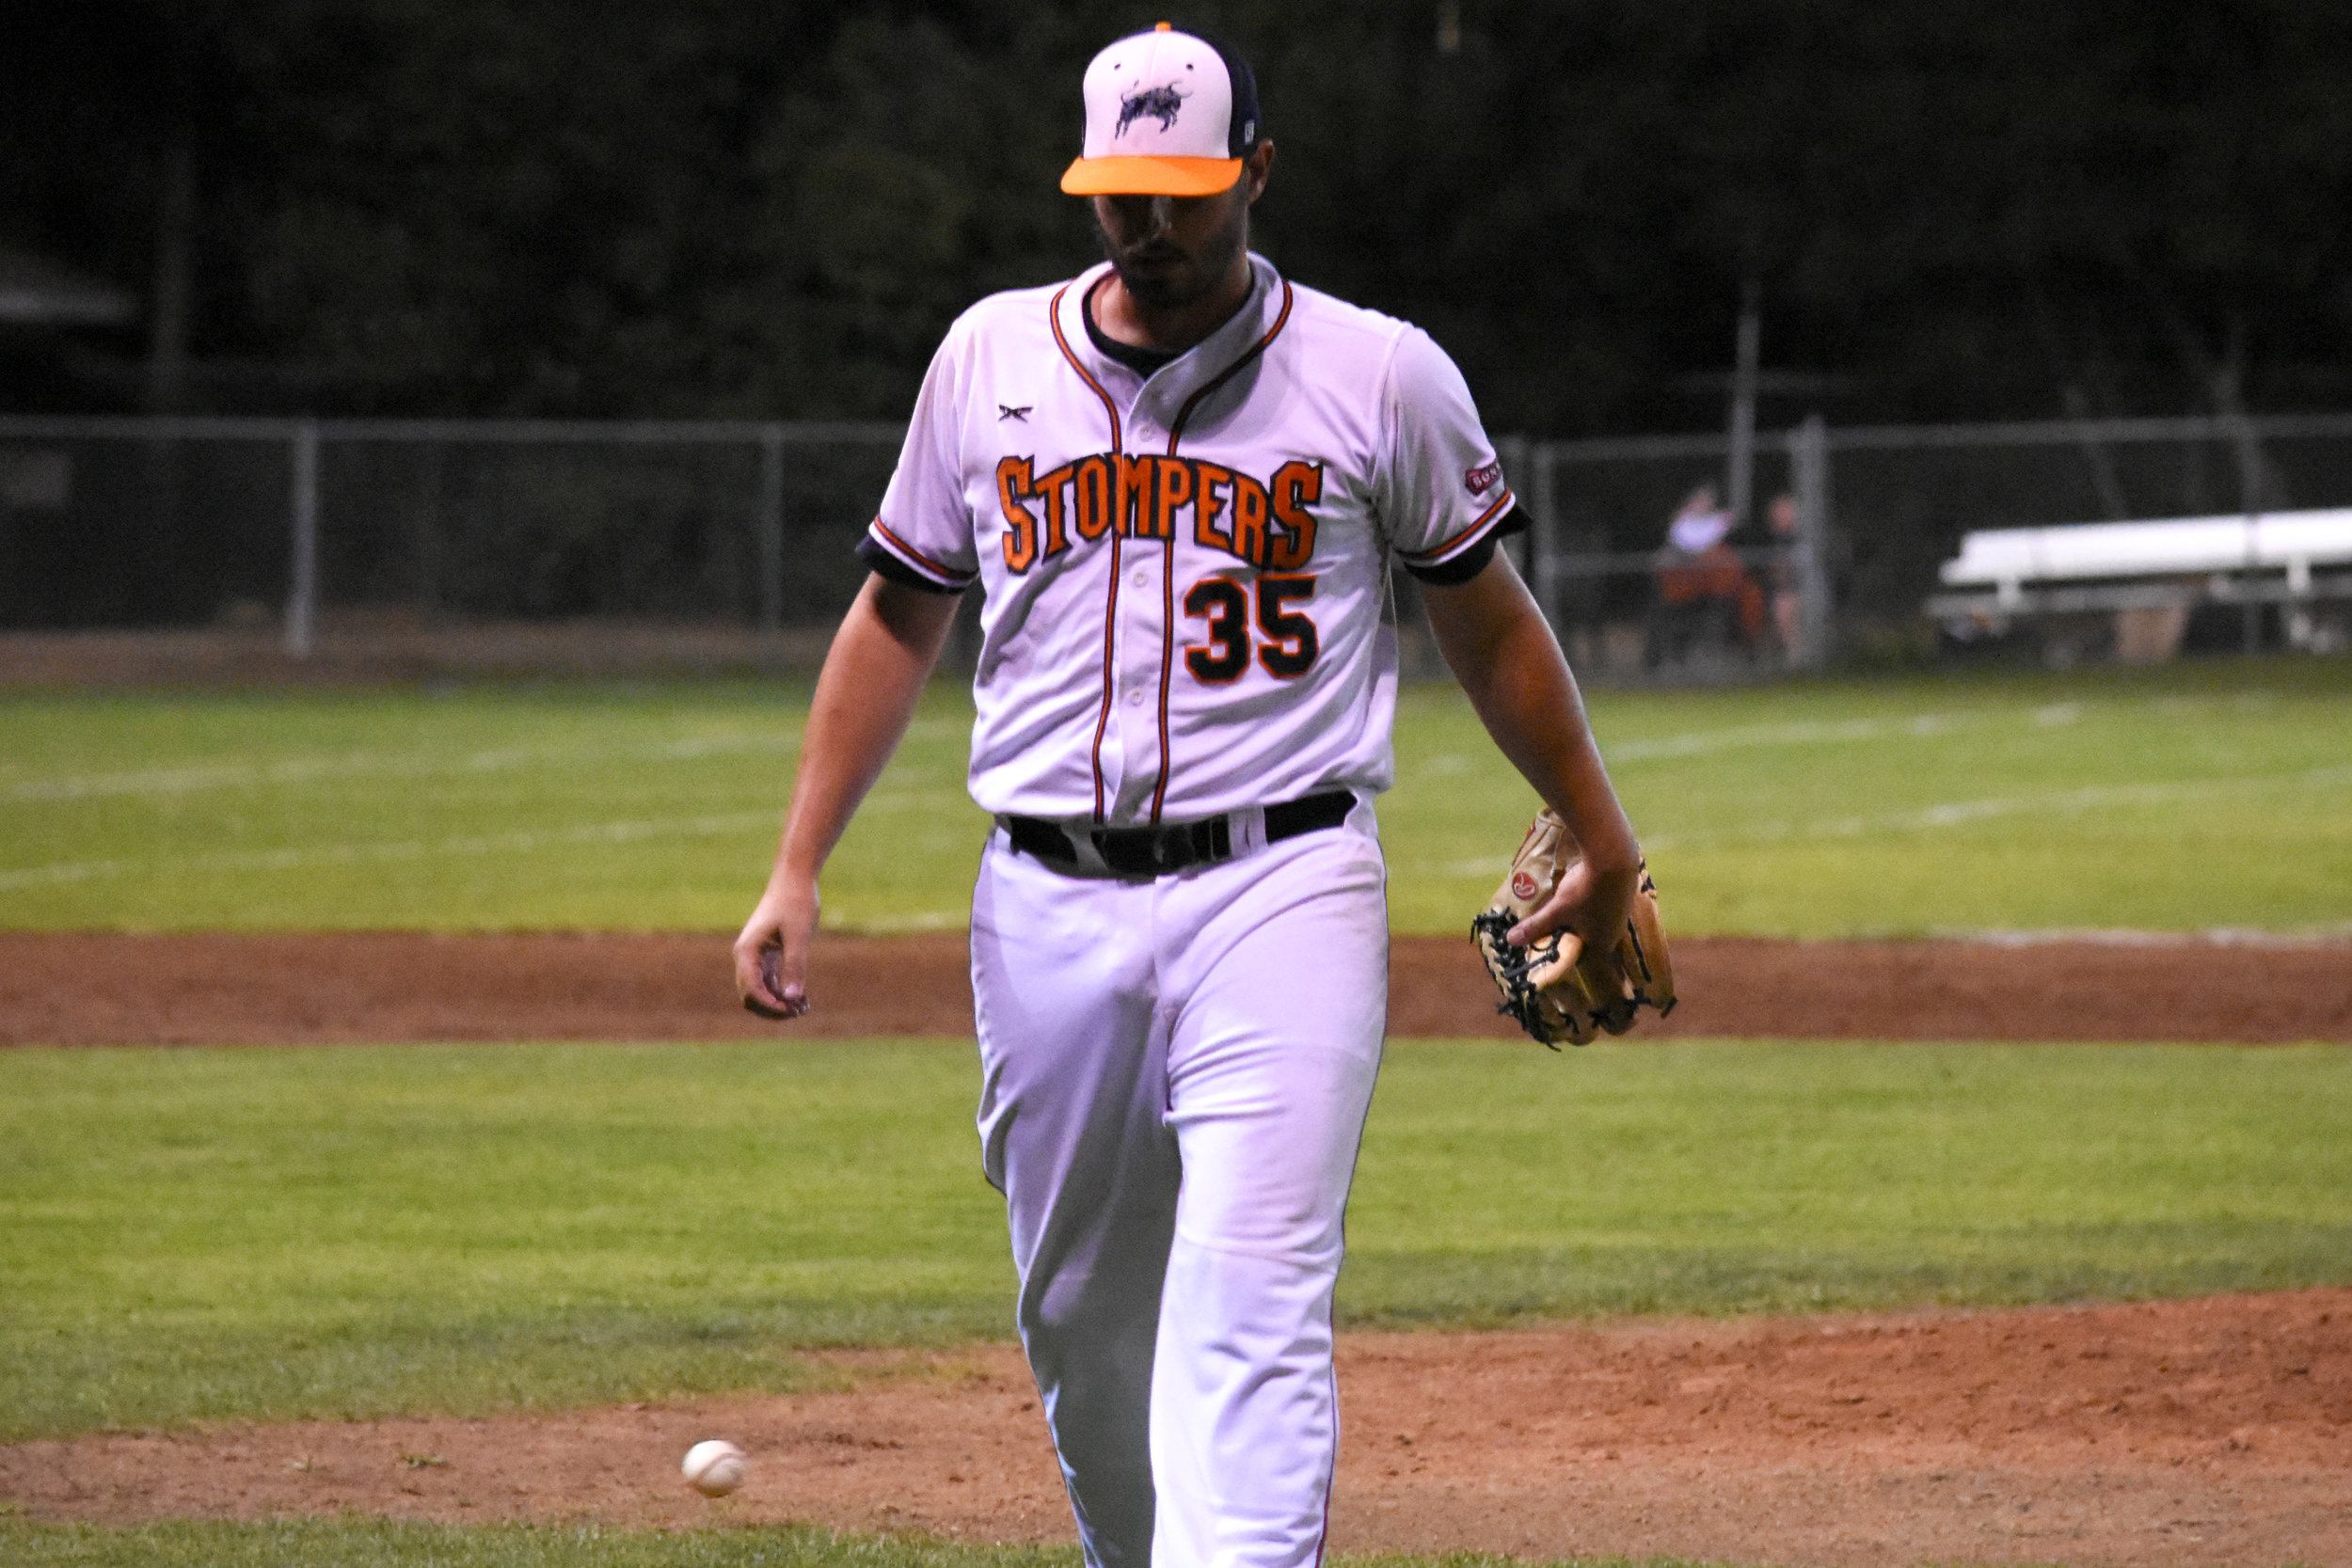 Kenny Mathews walks off the mound in the Sonoma Stompers game against the San Rafael Pacifics, September 2, 2018 in Sonoma, Calif.(James W. Toy III / Sonoma Stompers)